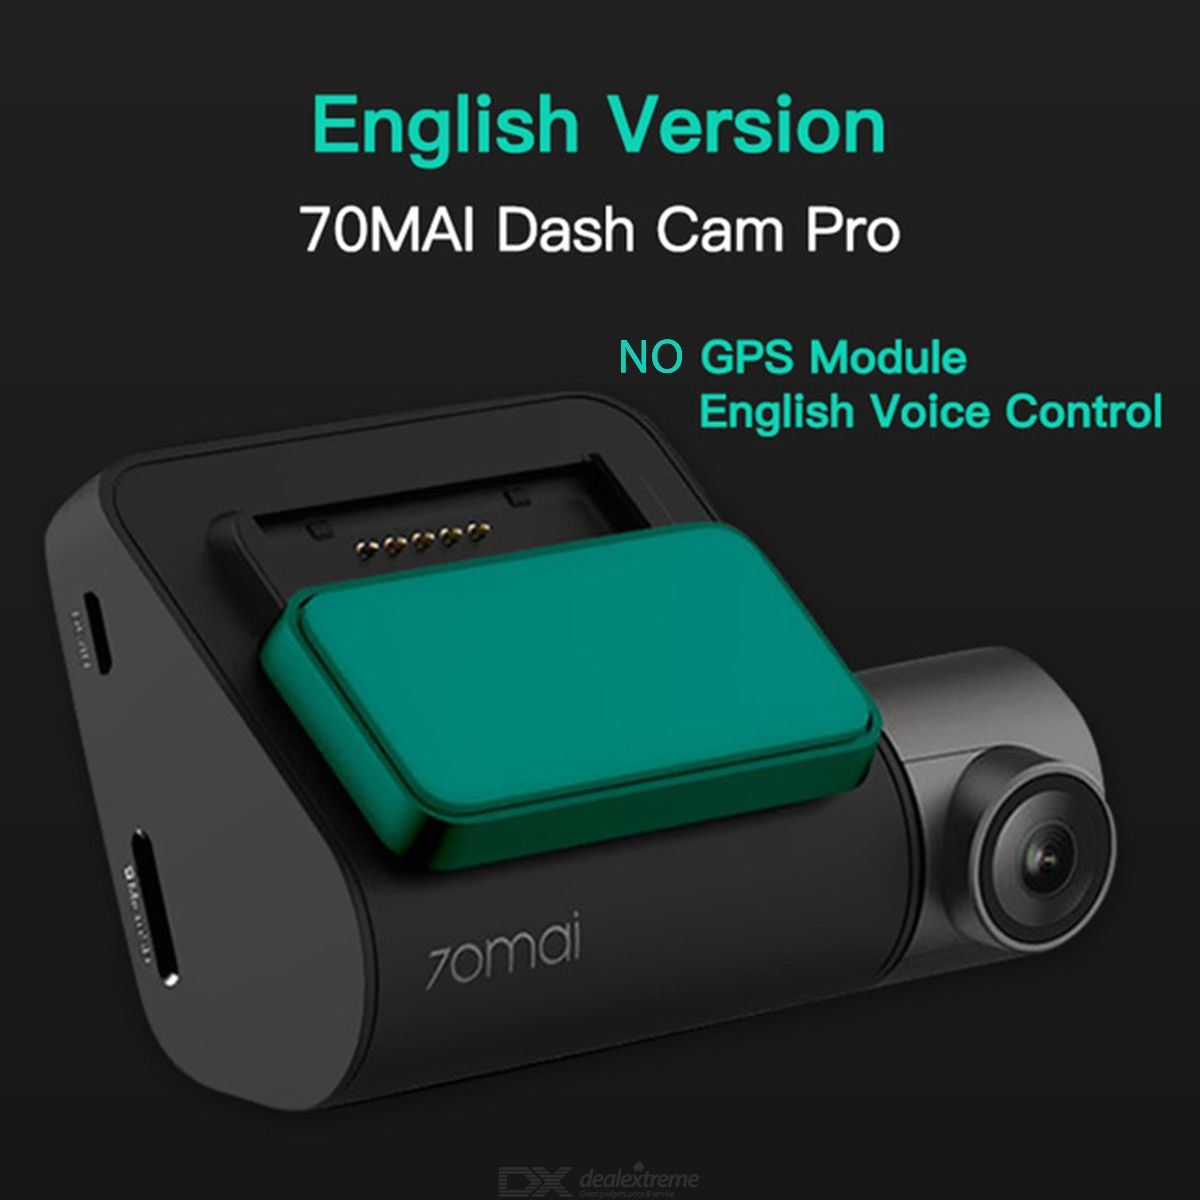 XIAOMI-70mai-Pro-Smart-Car-DVR-English-Version-Dash-Camera-Video-WIFI-SONY-IMX335-Sensor-140-Degree-FOV-Parking-Monitor-245630-2b-Free-Shipping